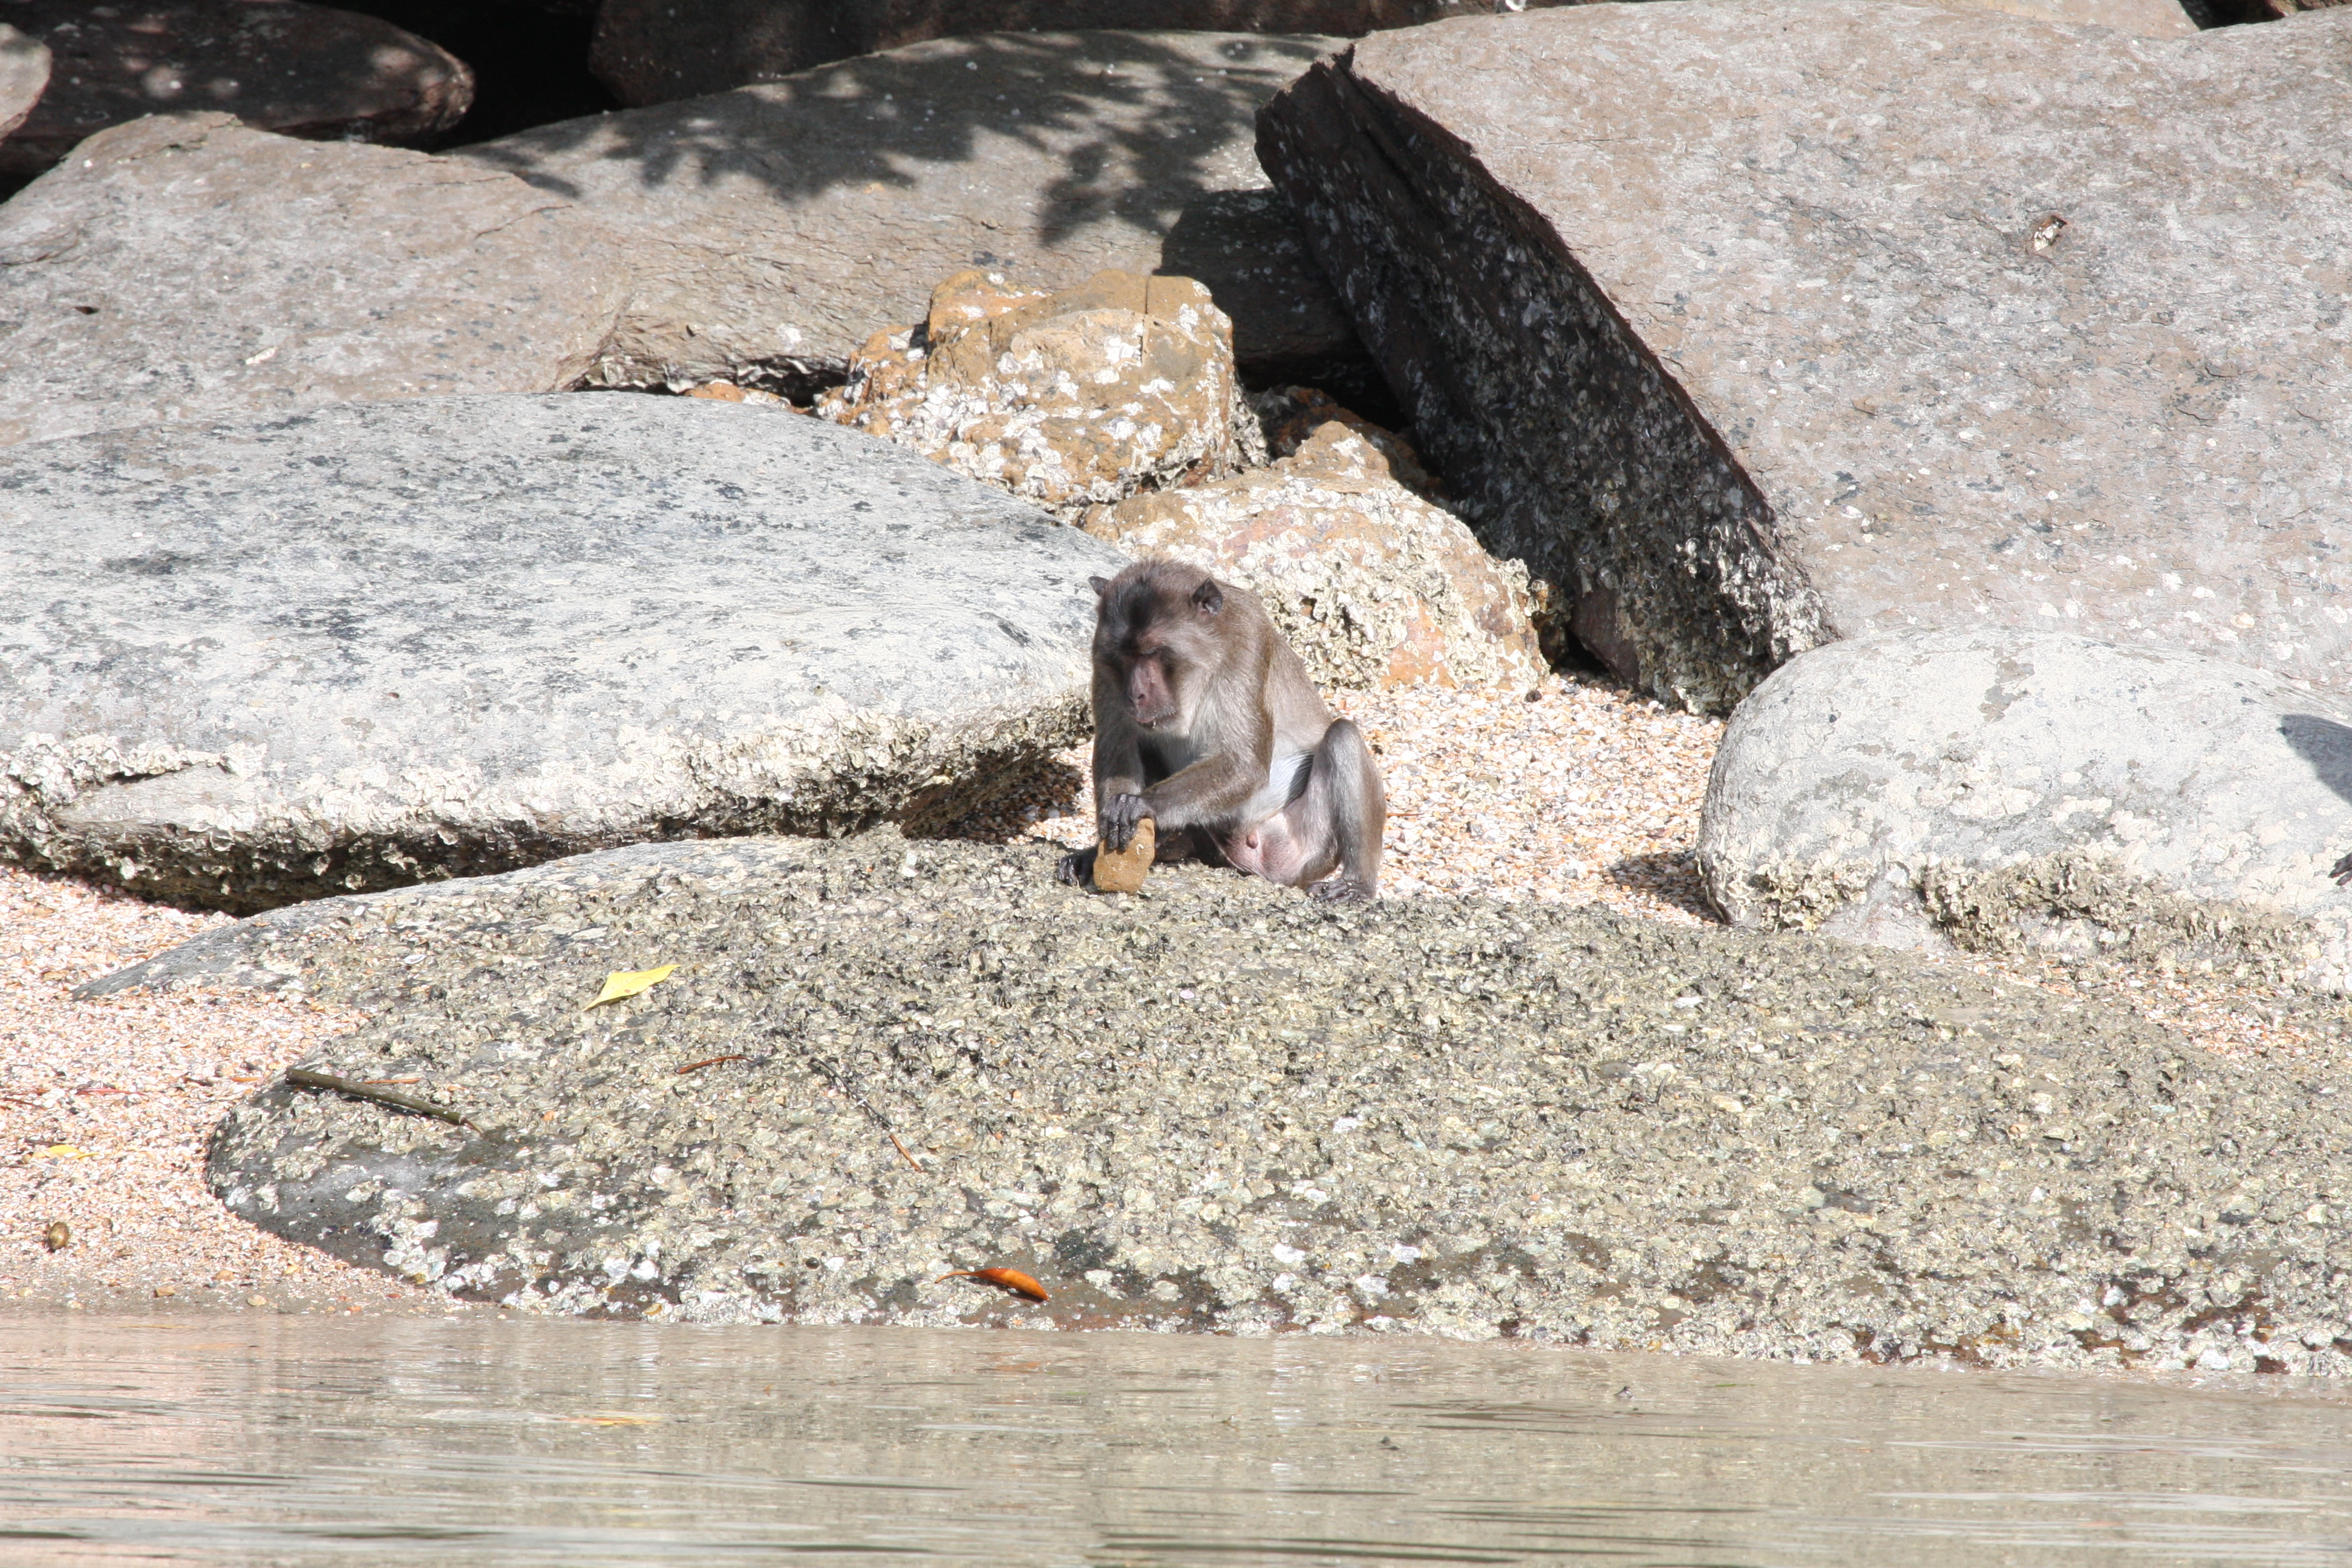 Generations of macaques used 'tools' to open their oysters and nuts